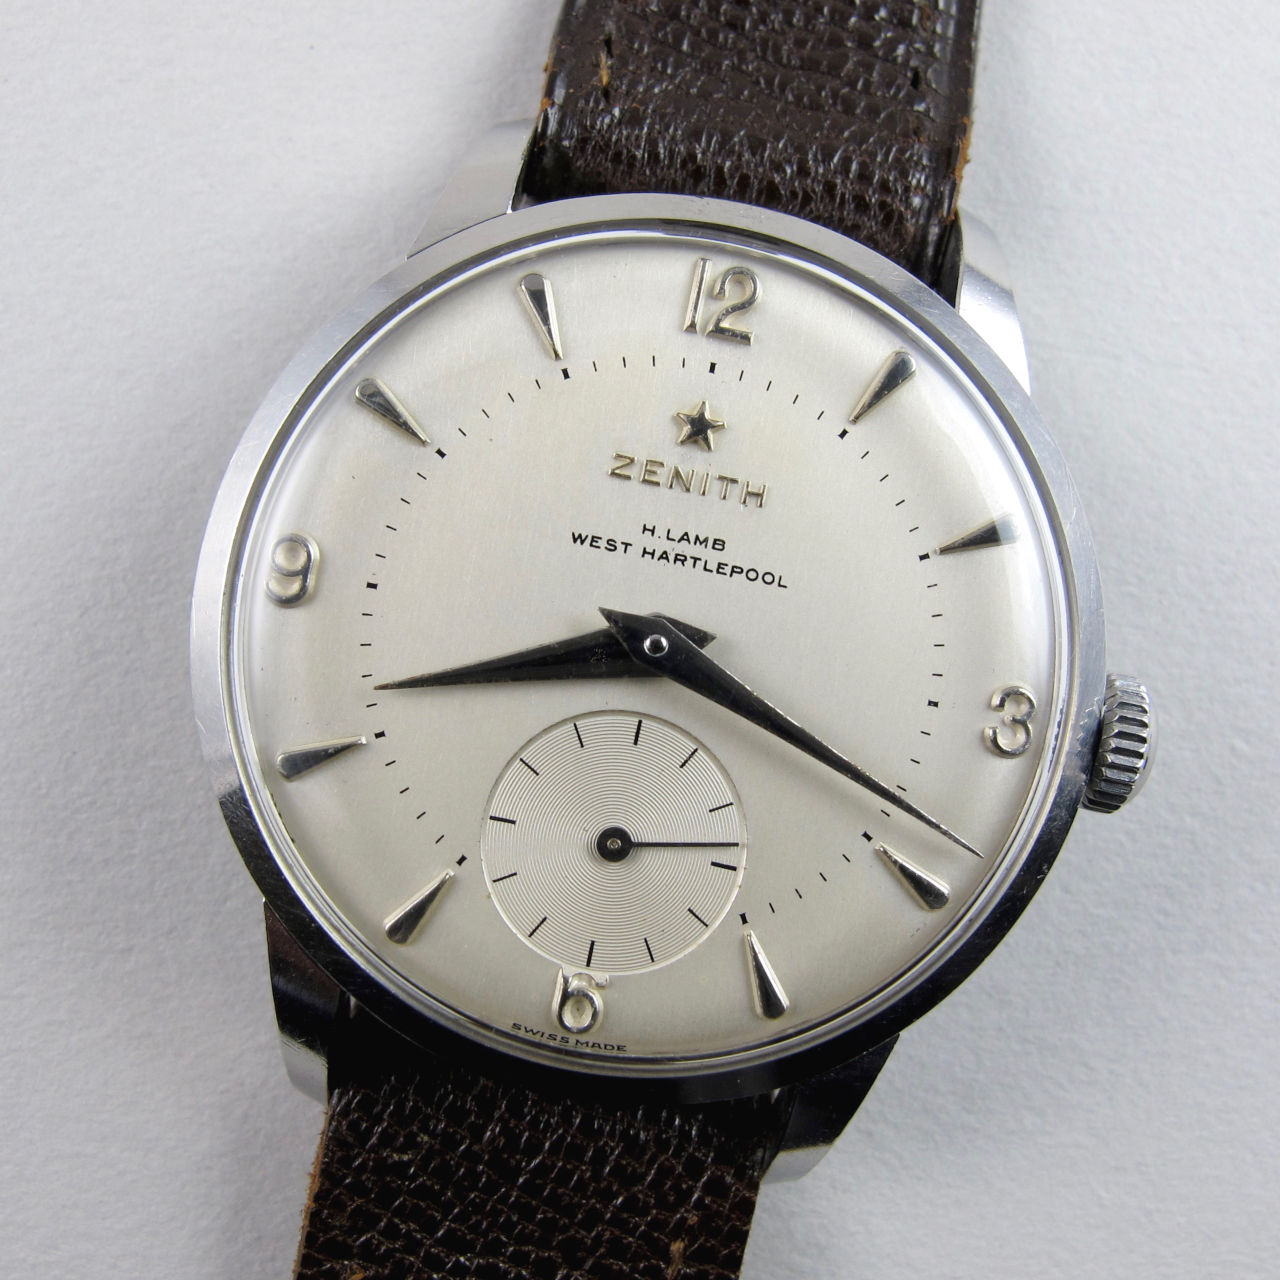 Zenith Sporto retailed by H. Lamb, West Hartlepool, steel vintage wristwatch, circa 1959